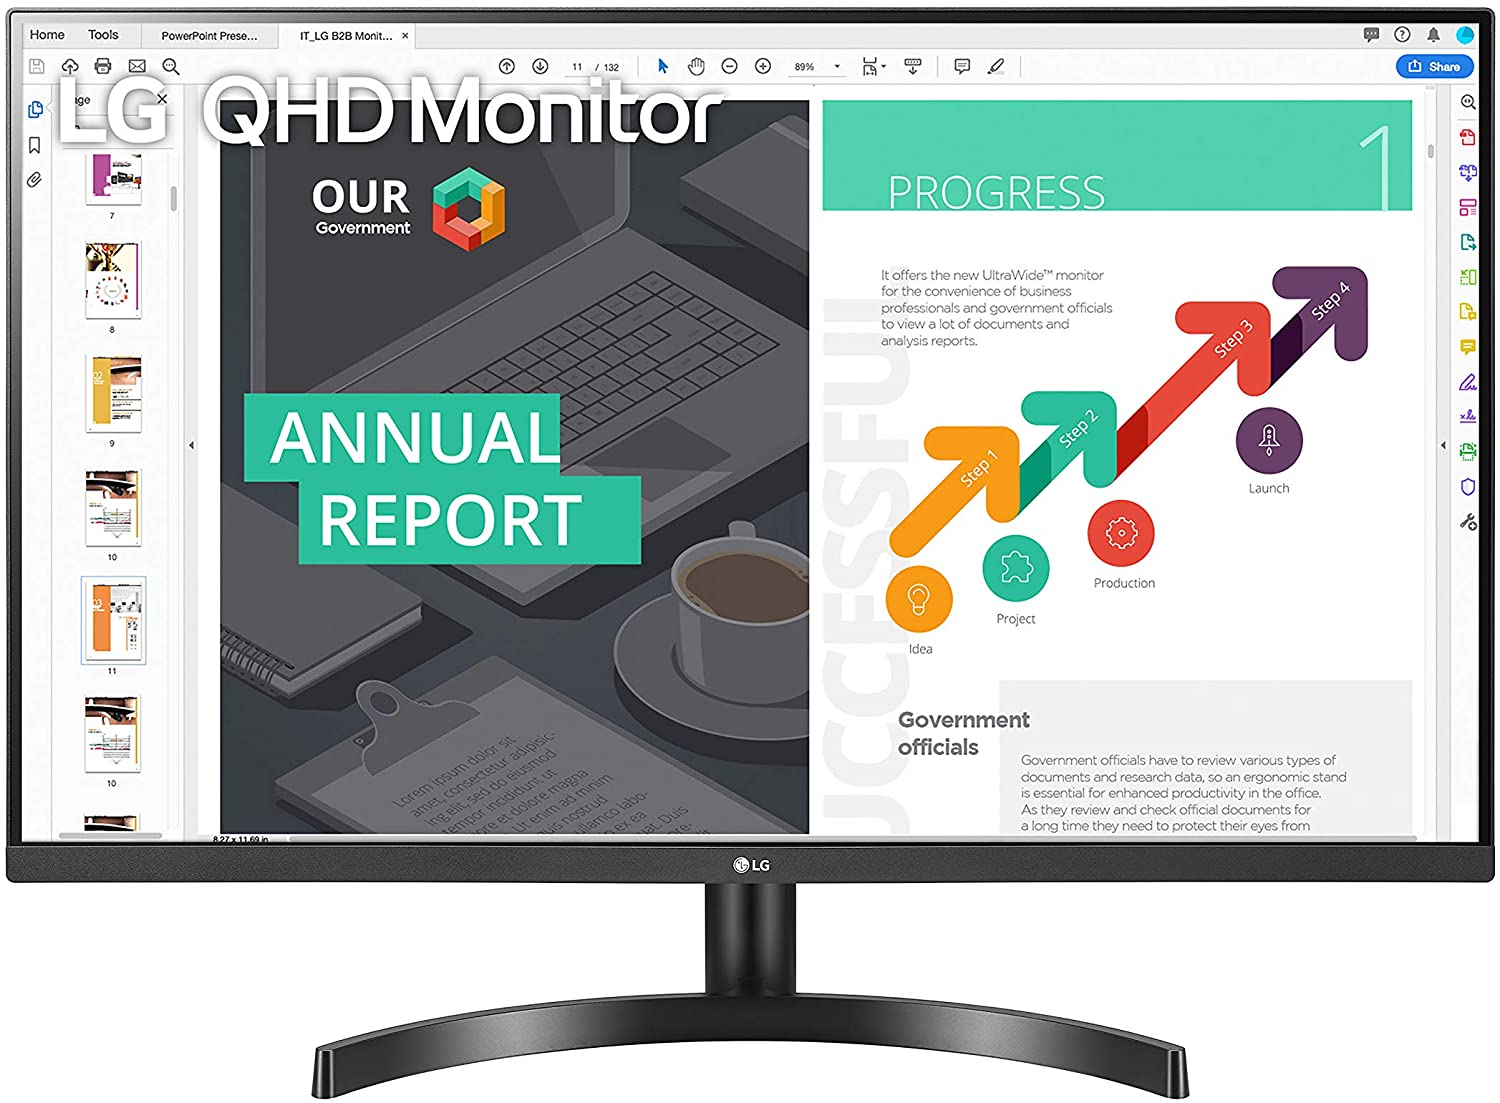 LG 32QN600-B 32″ 2560 x 1440 IPS Monitor with HDR 10